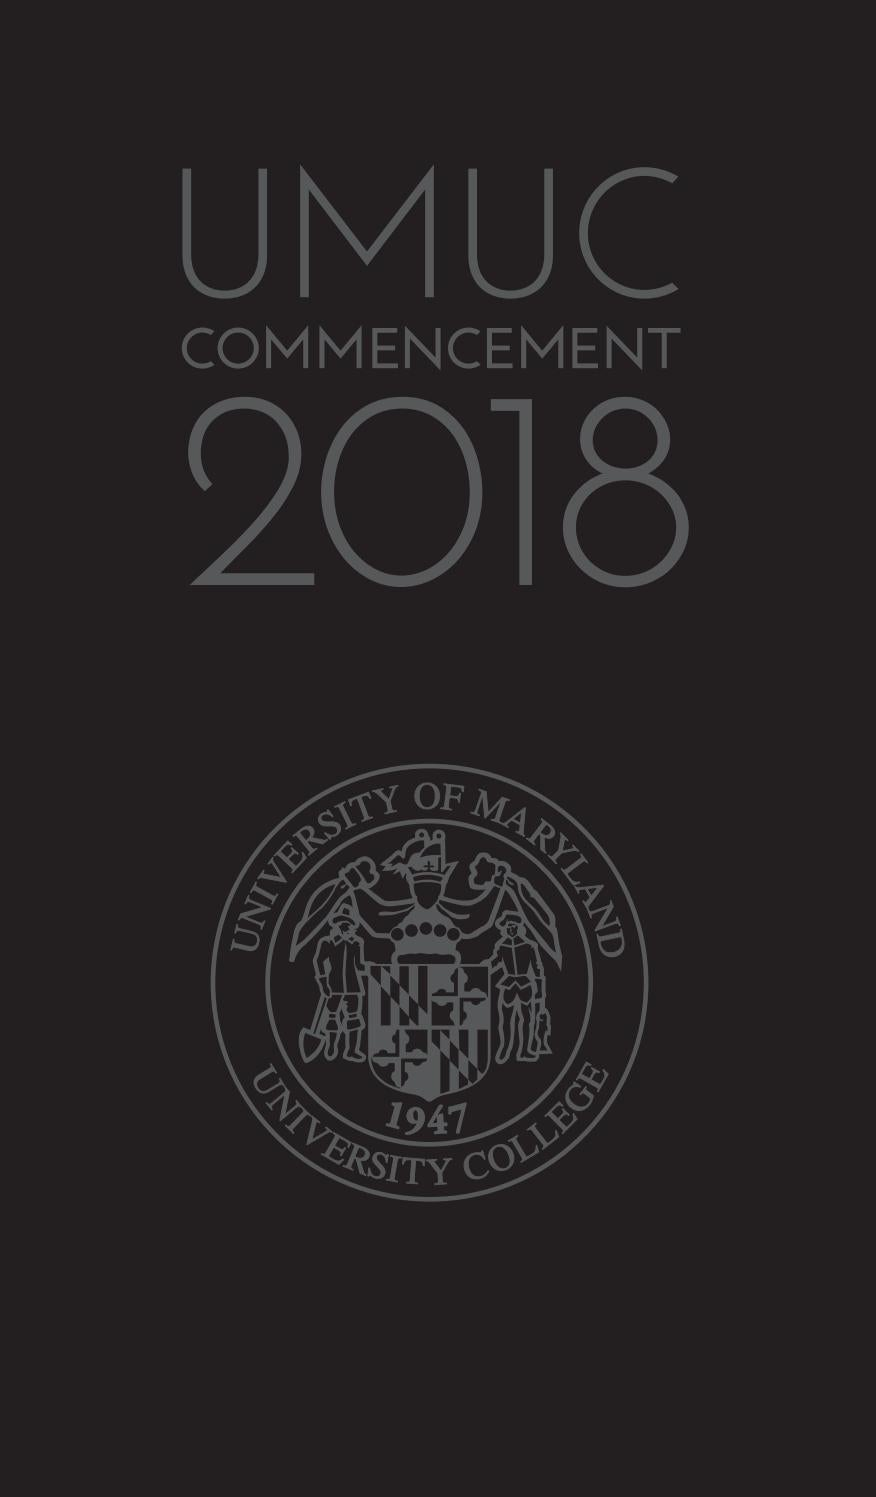 UMUC 2018 Winter Commencement Program by University of Maryland